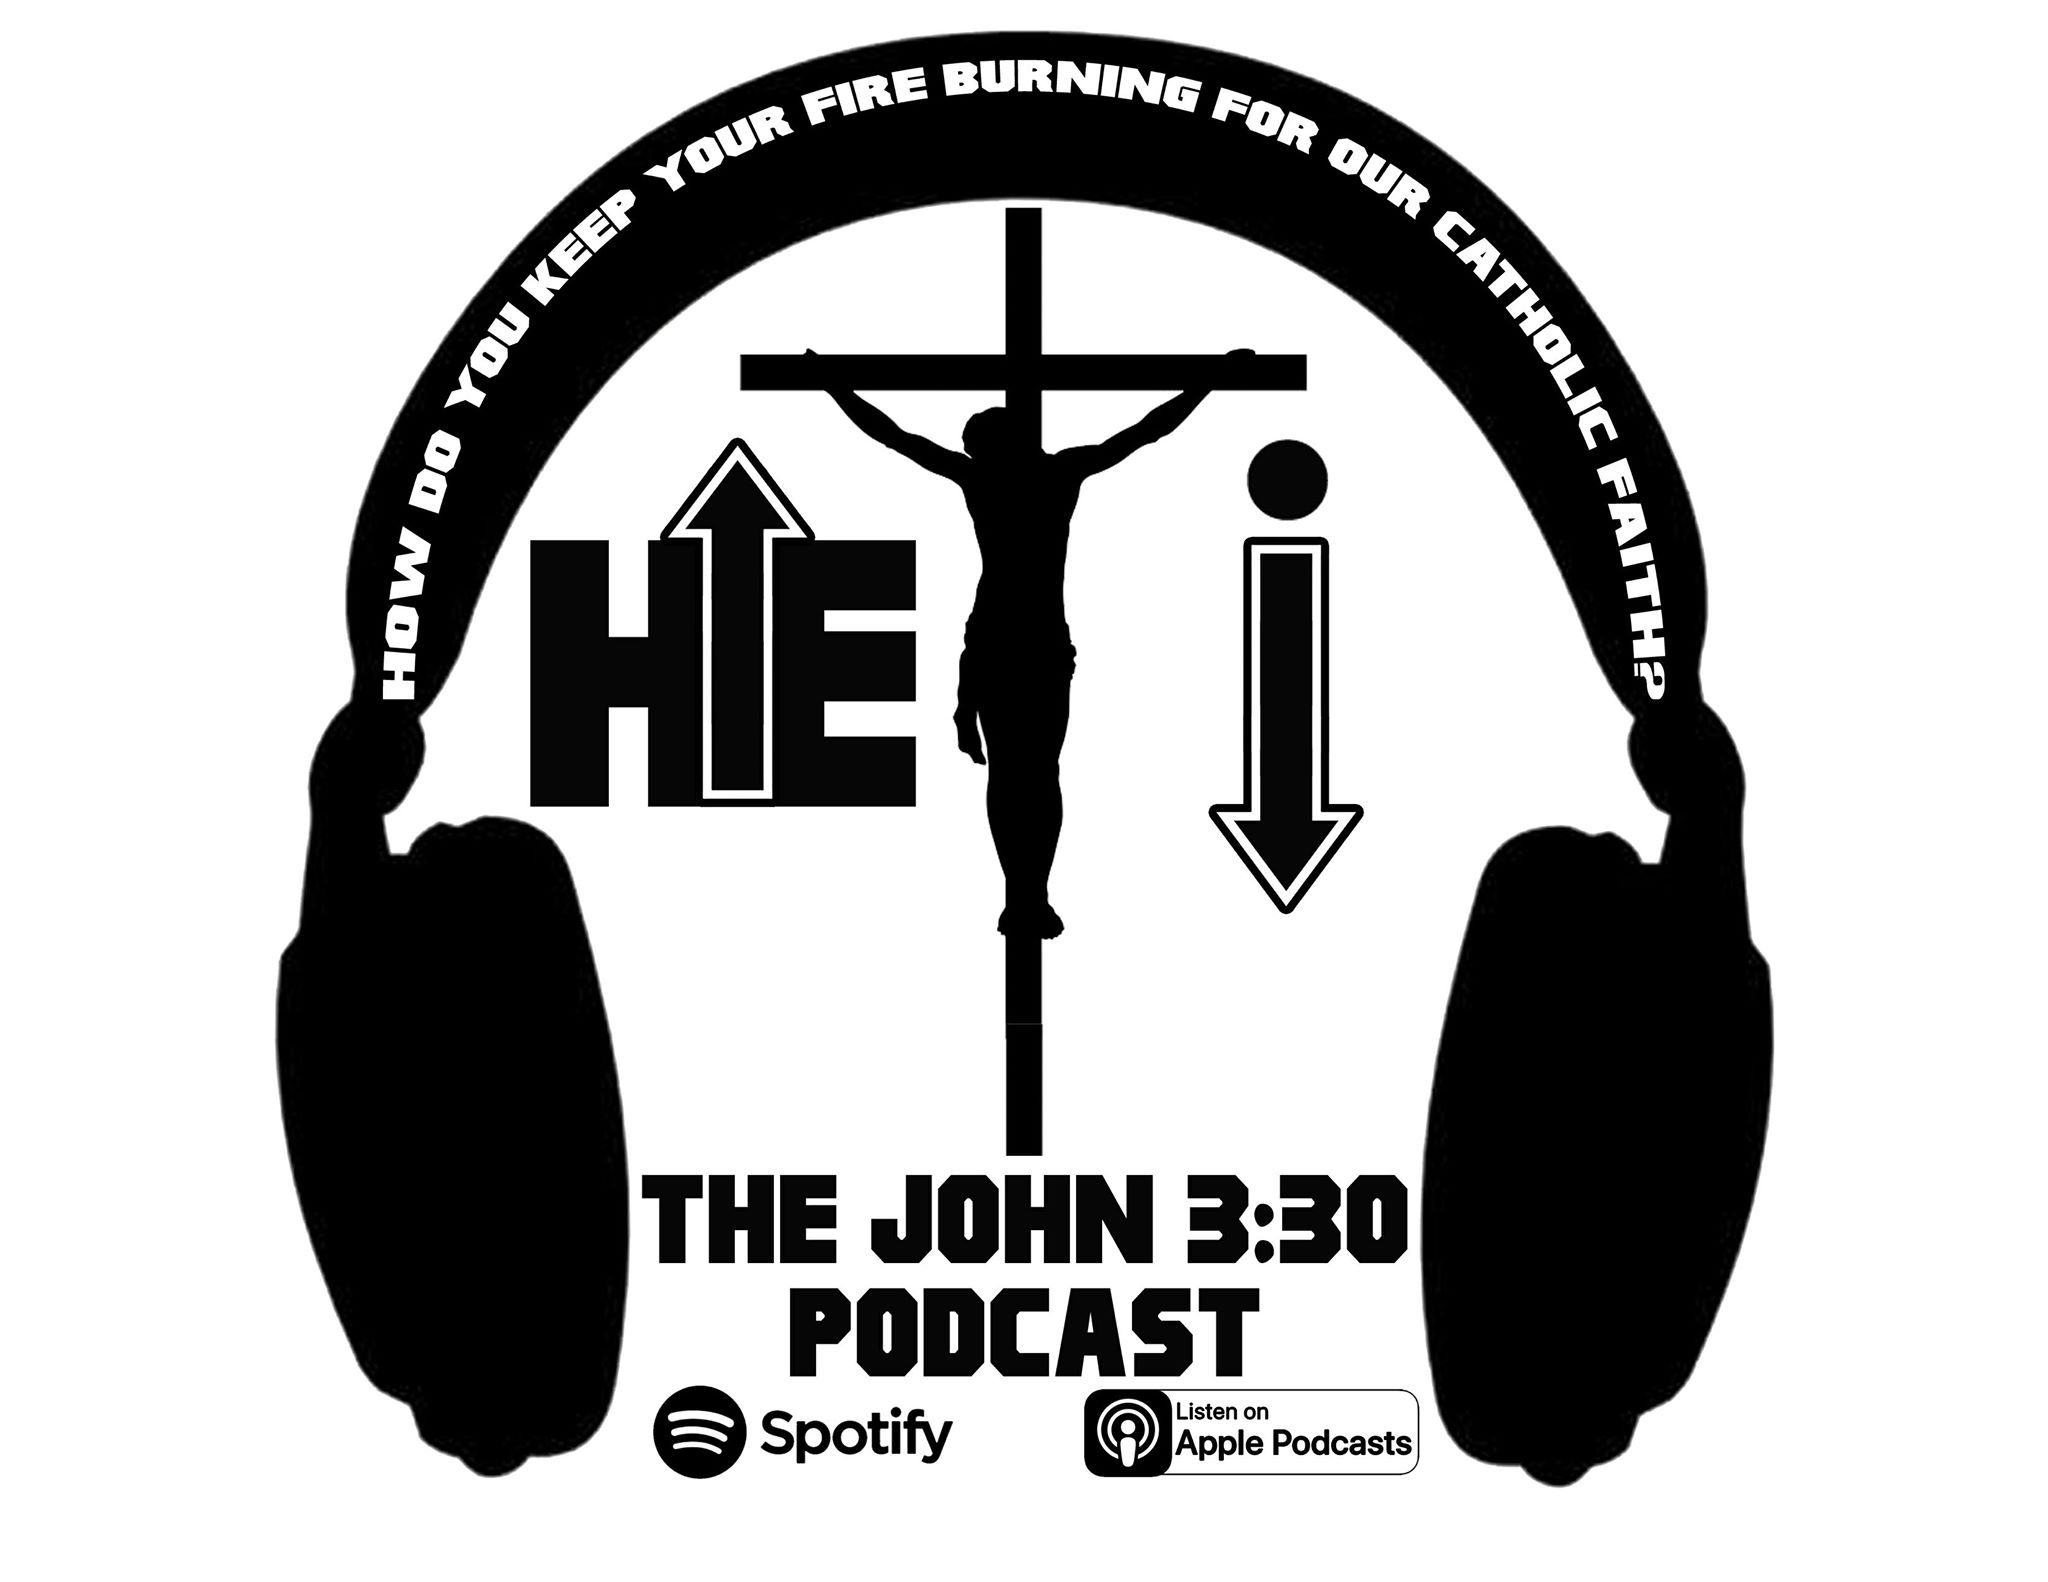 The John 3:30 Podcast - Episode 71: Clarissa Charles & Daniel Gonzales